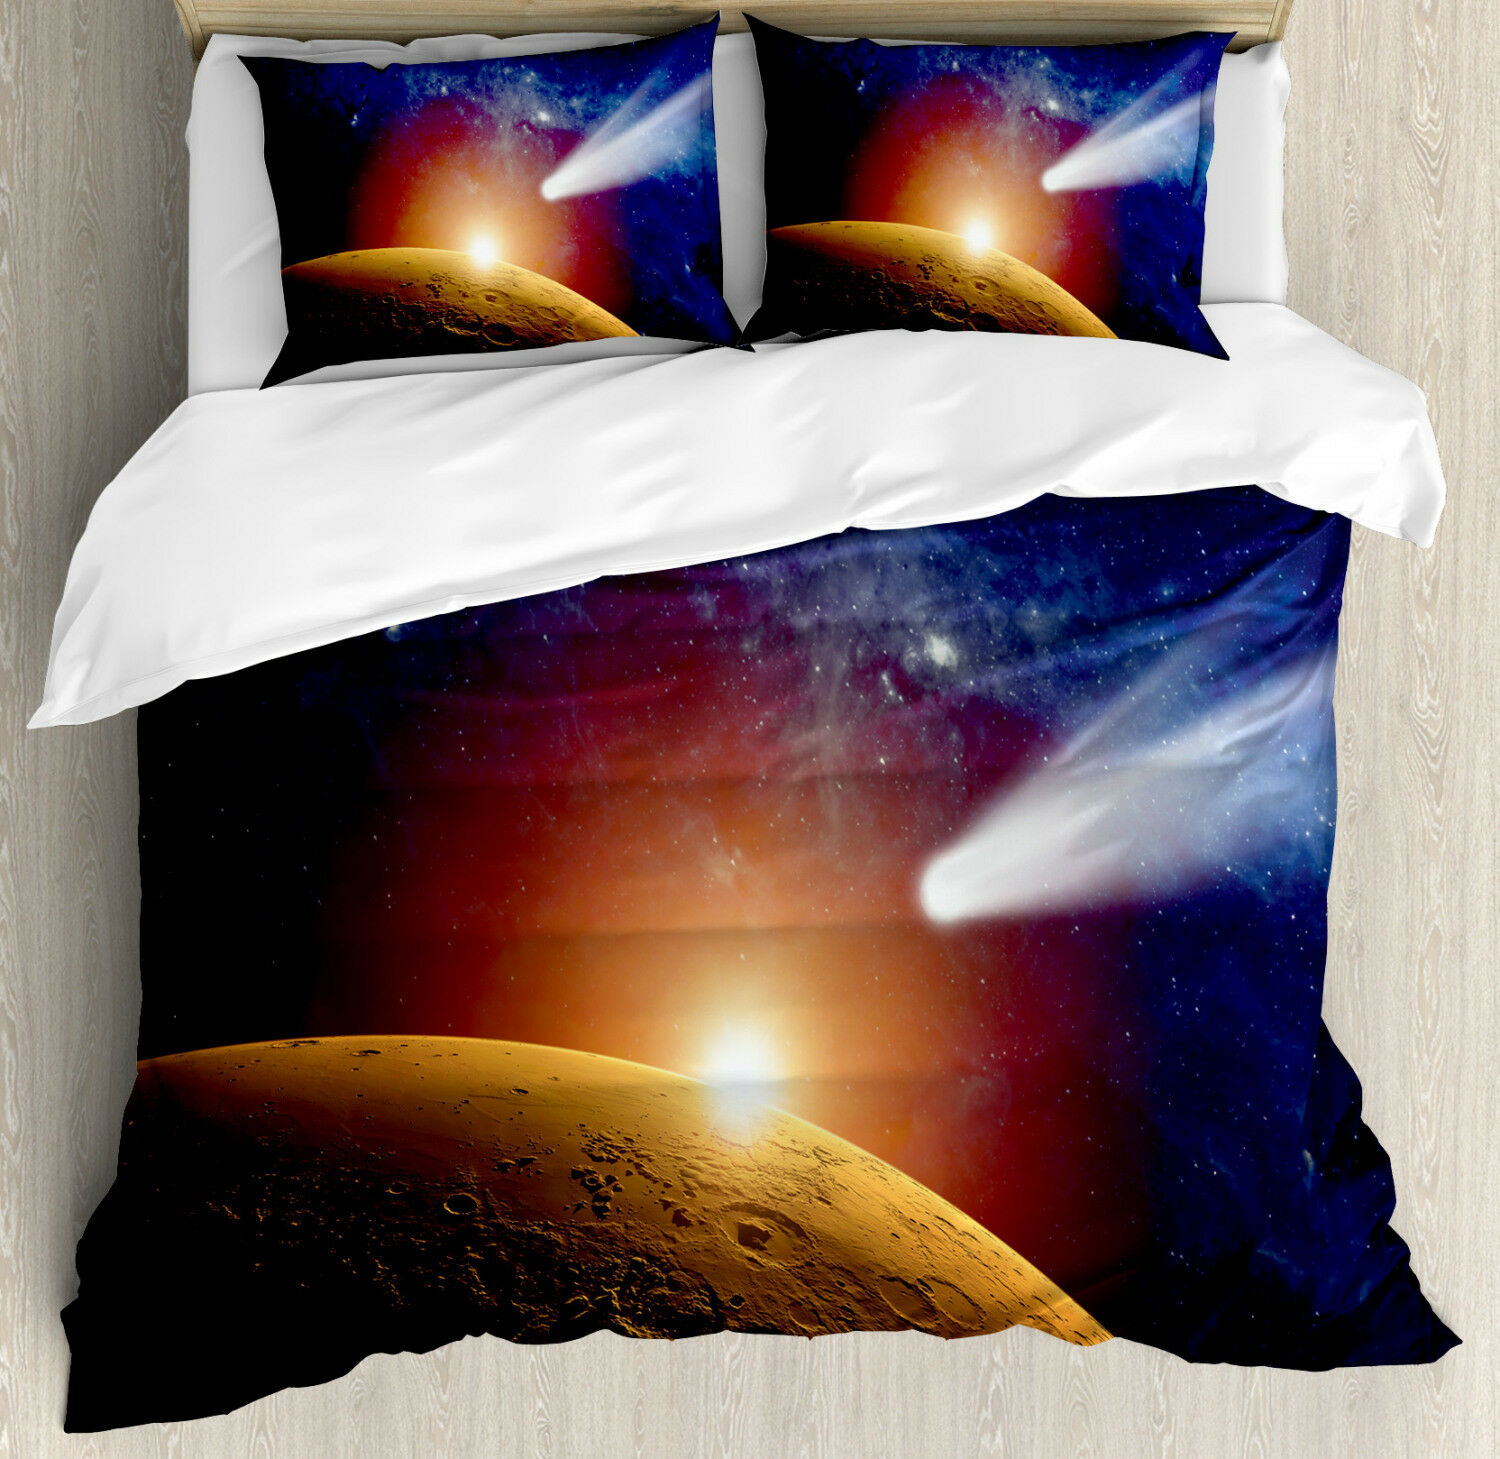 Outer Space Duvet Cover Set with Pillow Shams Dark Solar Scenery Print